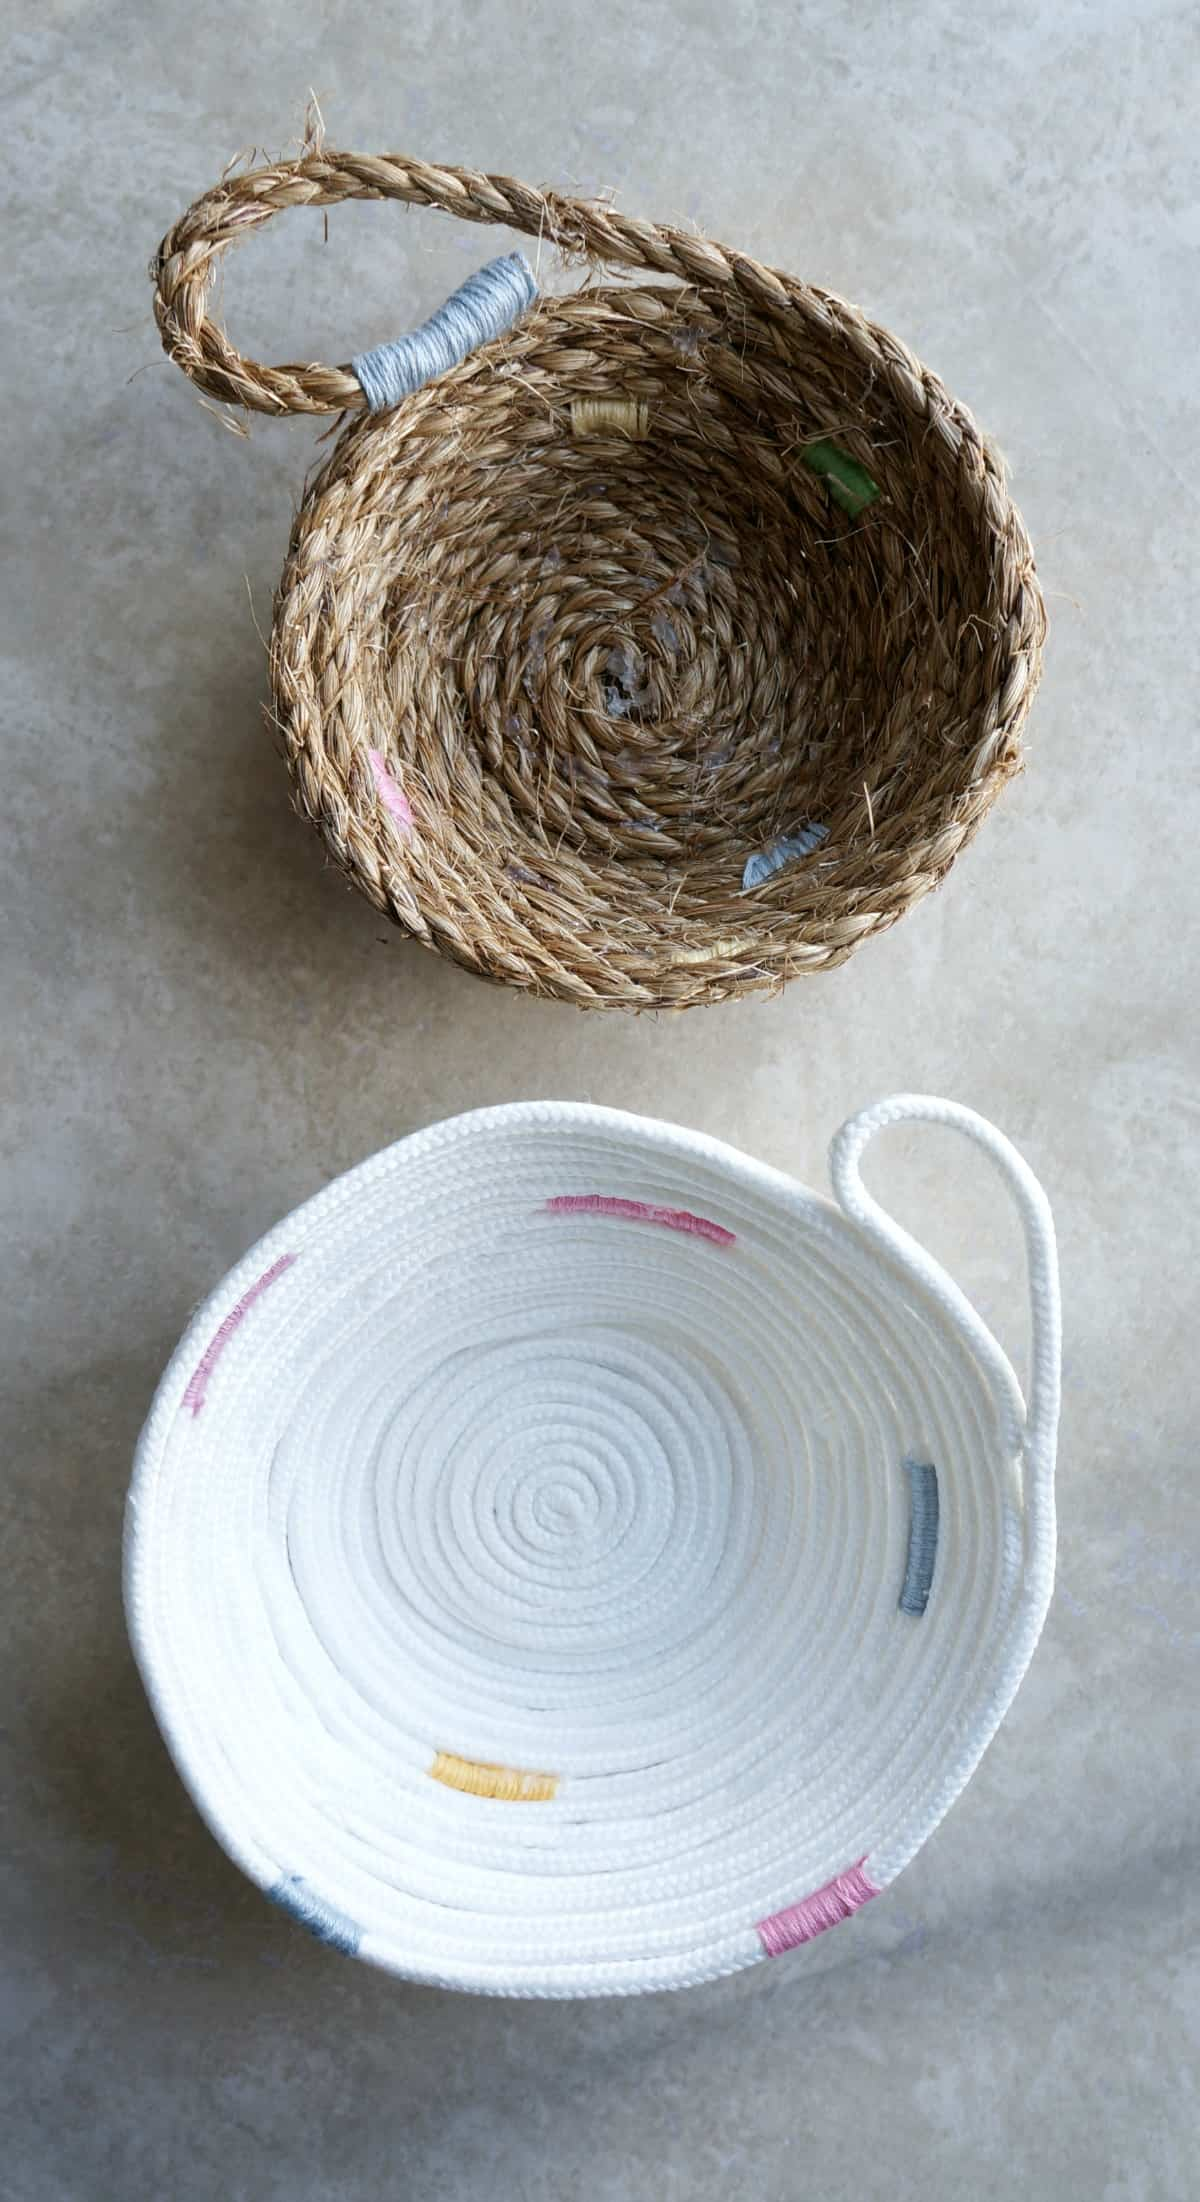 Easy to make no sew rope bowl with pops of color